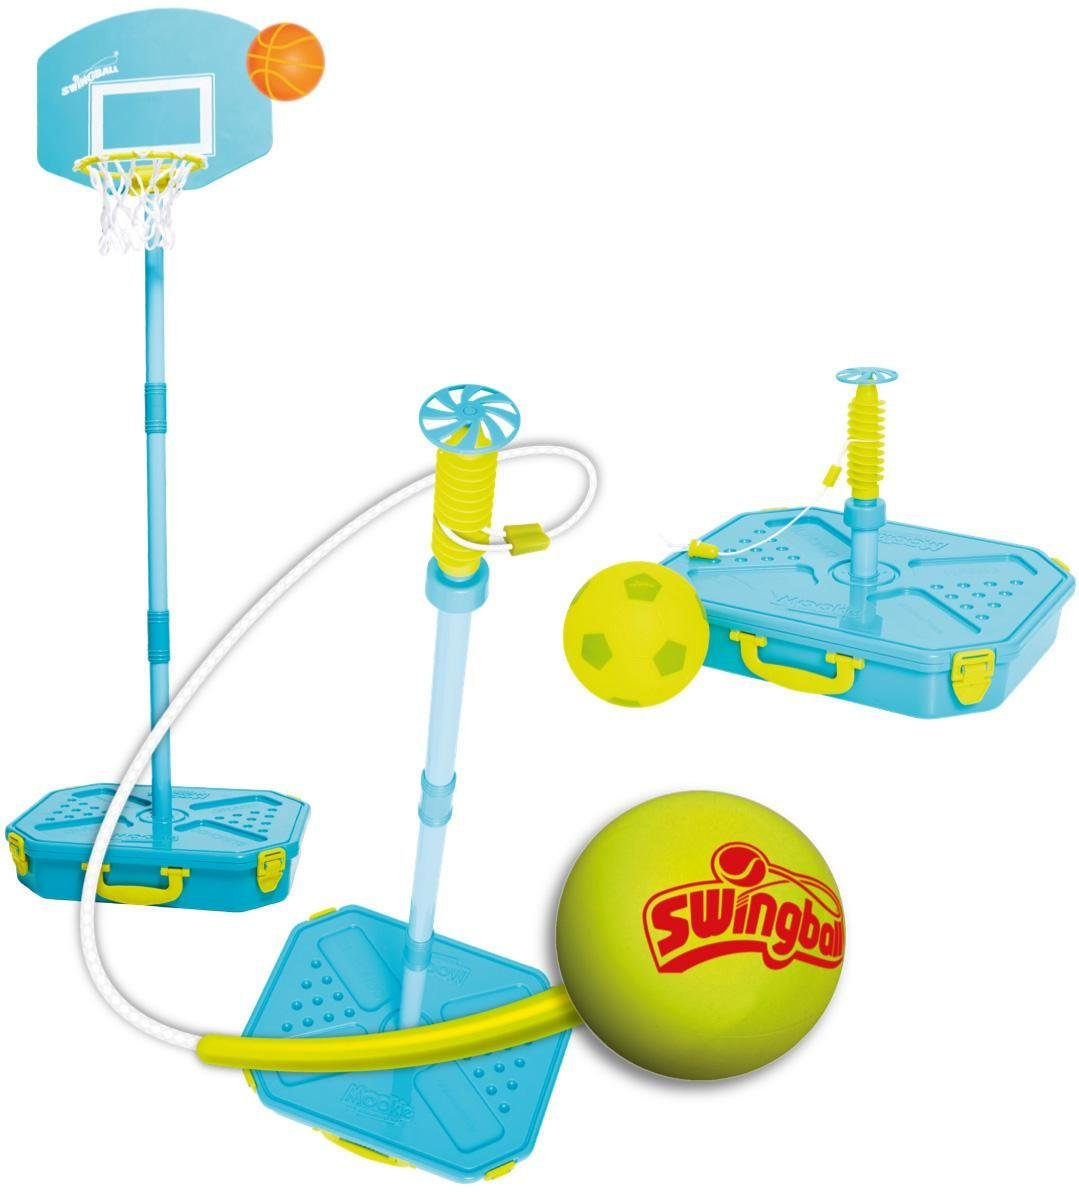 Beluga Outdoorspielzeug, »3 in 1 Swingball«